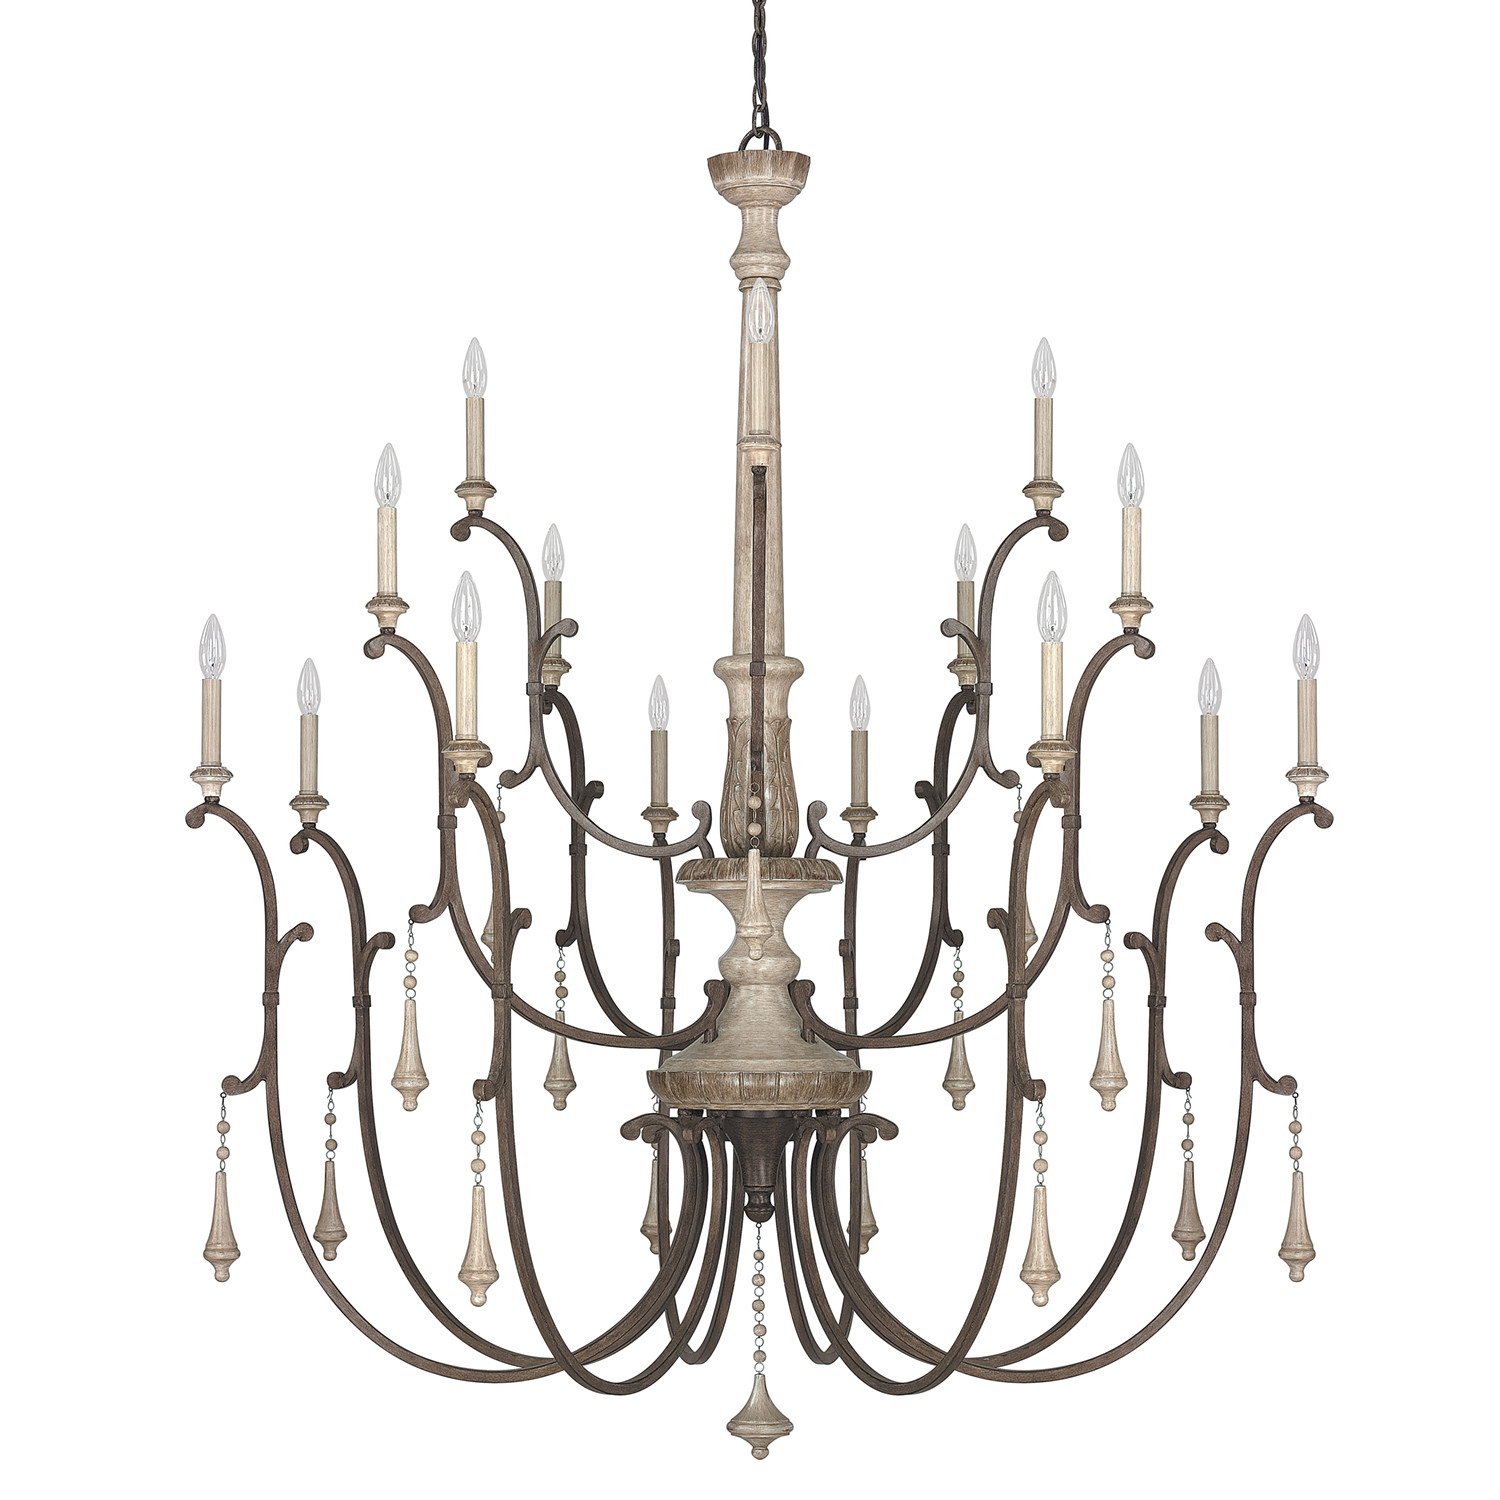 16 Light Chandelier from the Chateau French Oak collection by Capital Lighting 4098FO